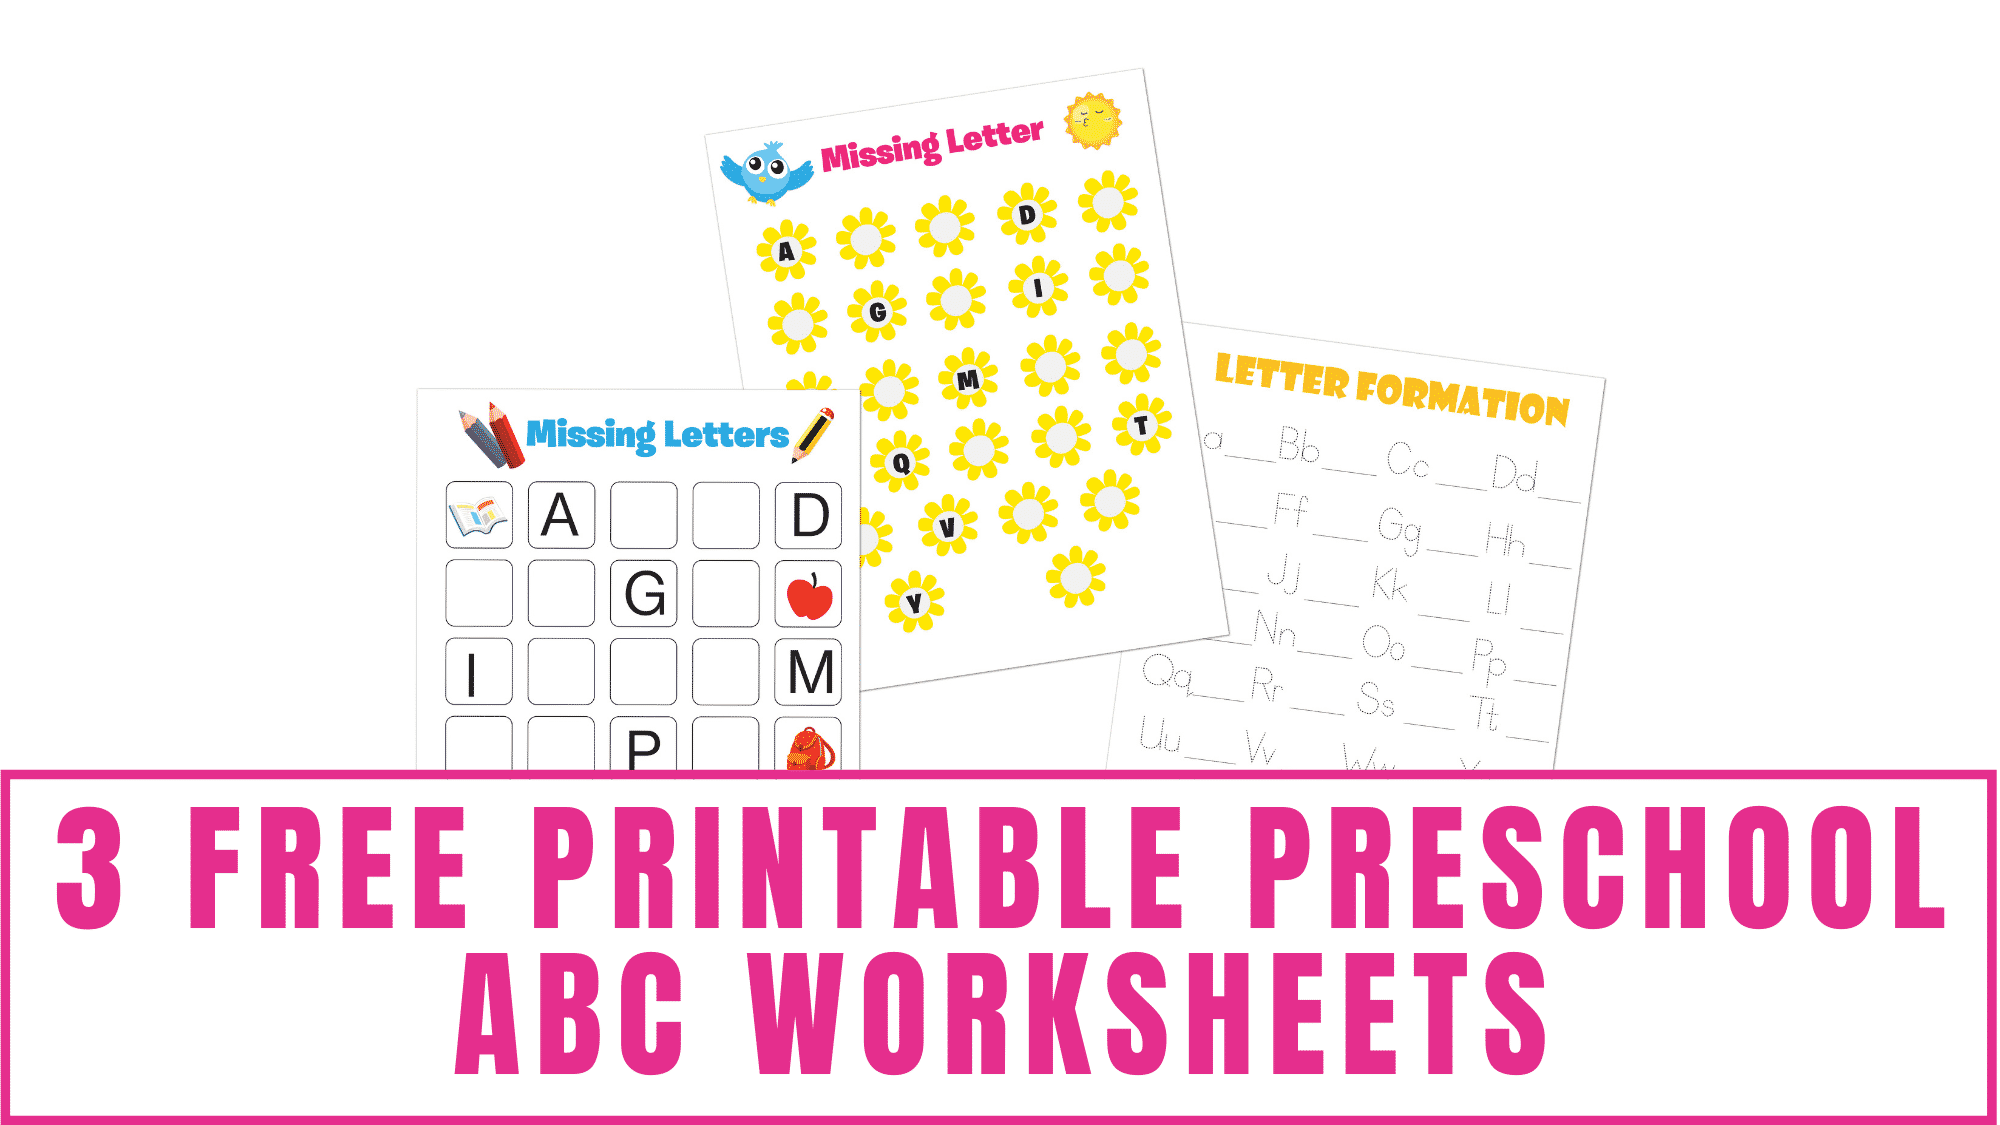 Need letter tracing worksheets for preschool or kindergarten? These free printable preschool ABC worksheets not only help with tracing letters but they also help with letter recognition and letter order as well.